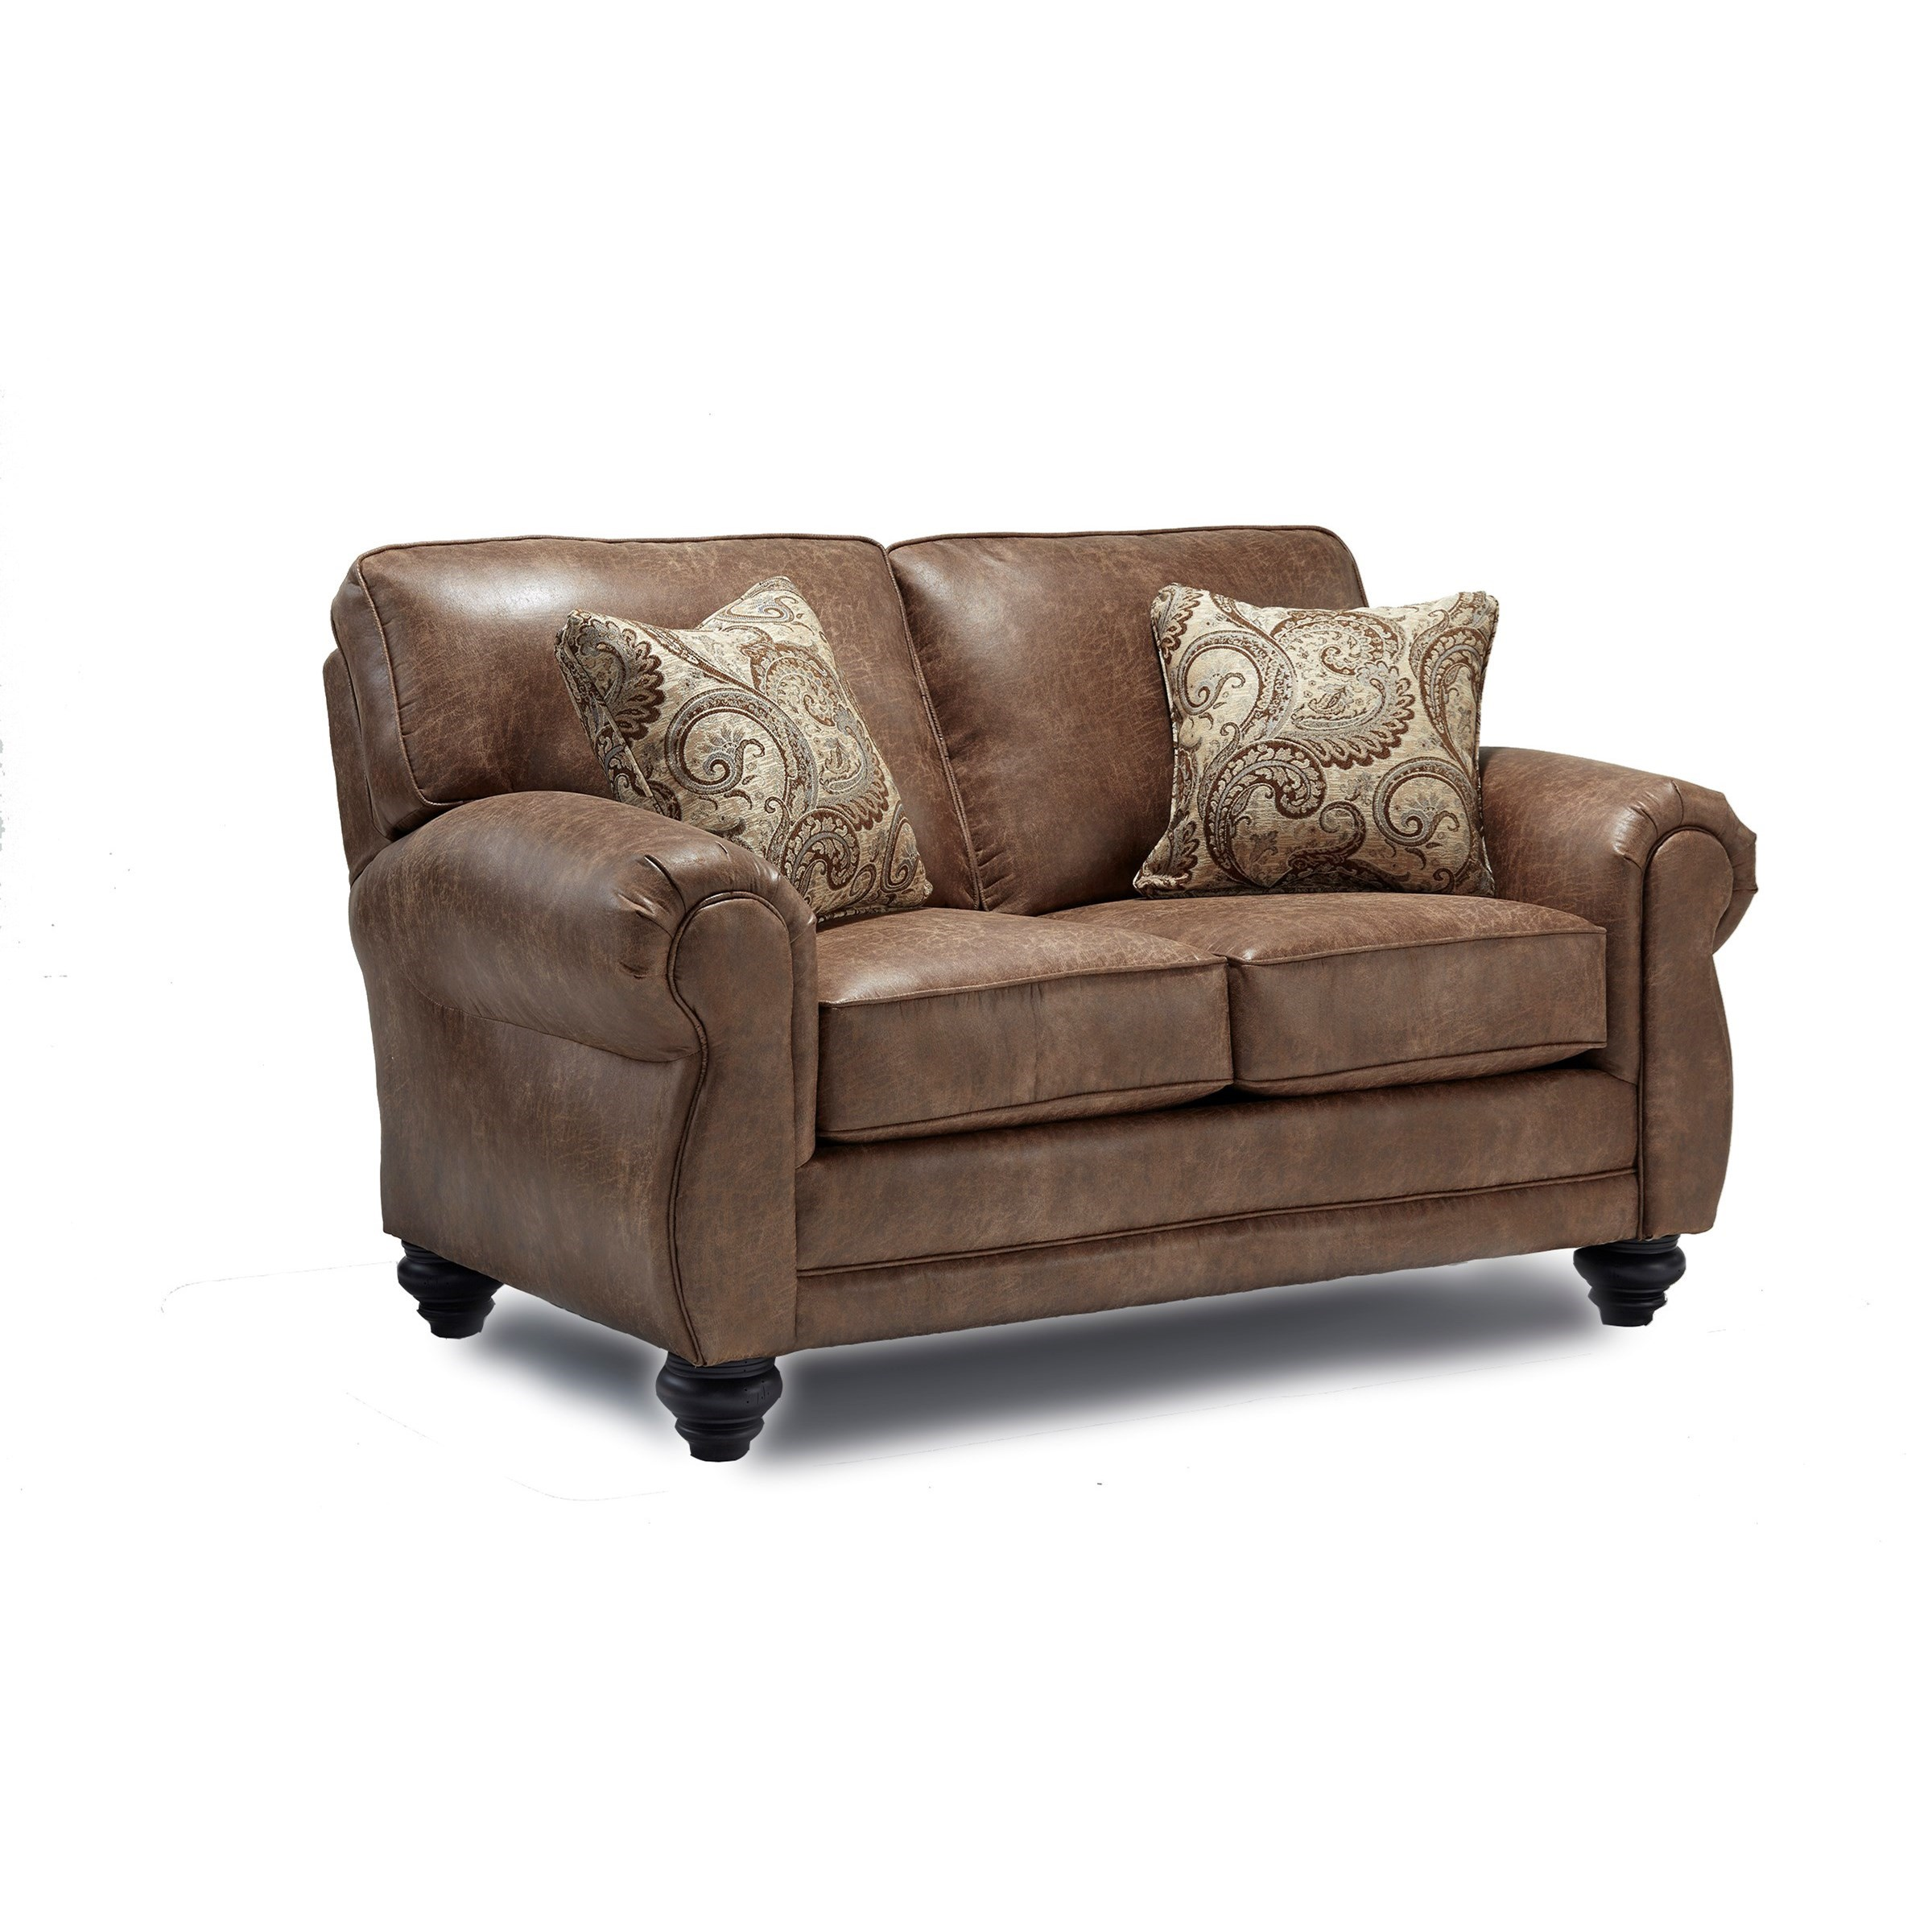 Best Home Furnishings Fitzpatrick Stationary Loveseat - Item Number: L63DP